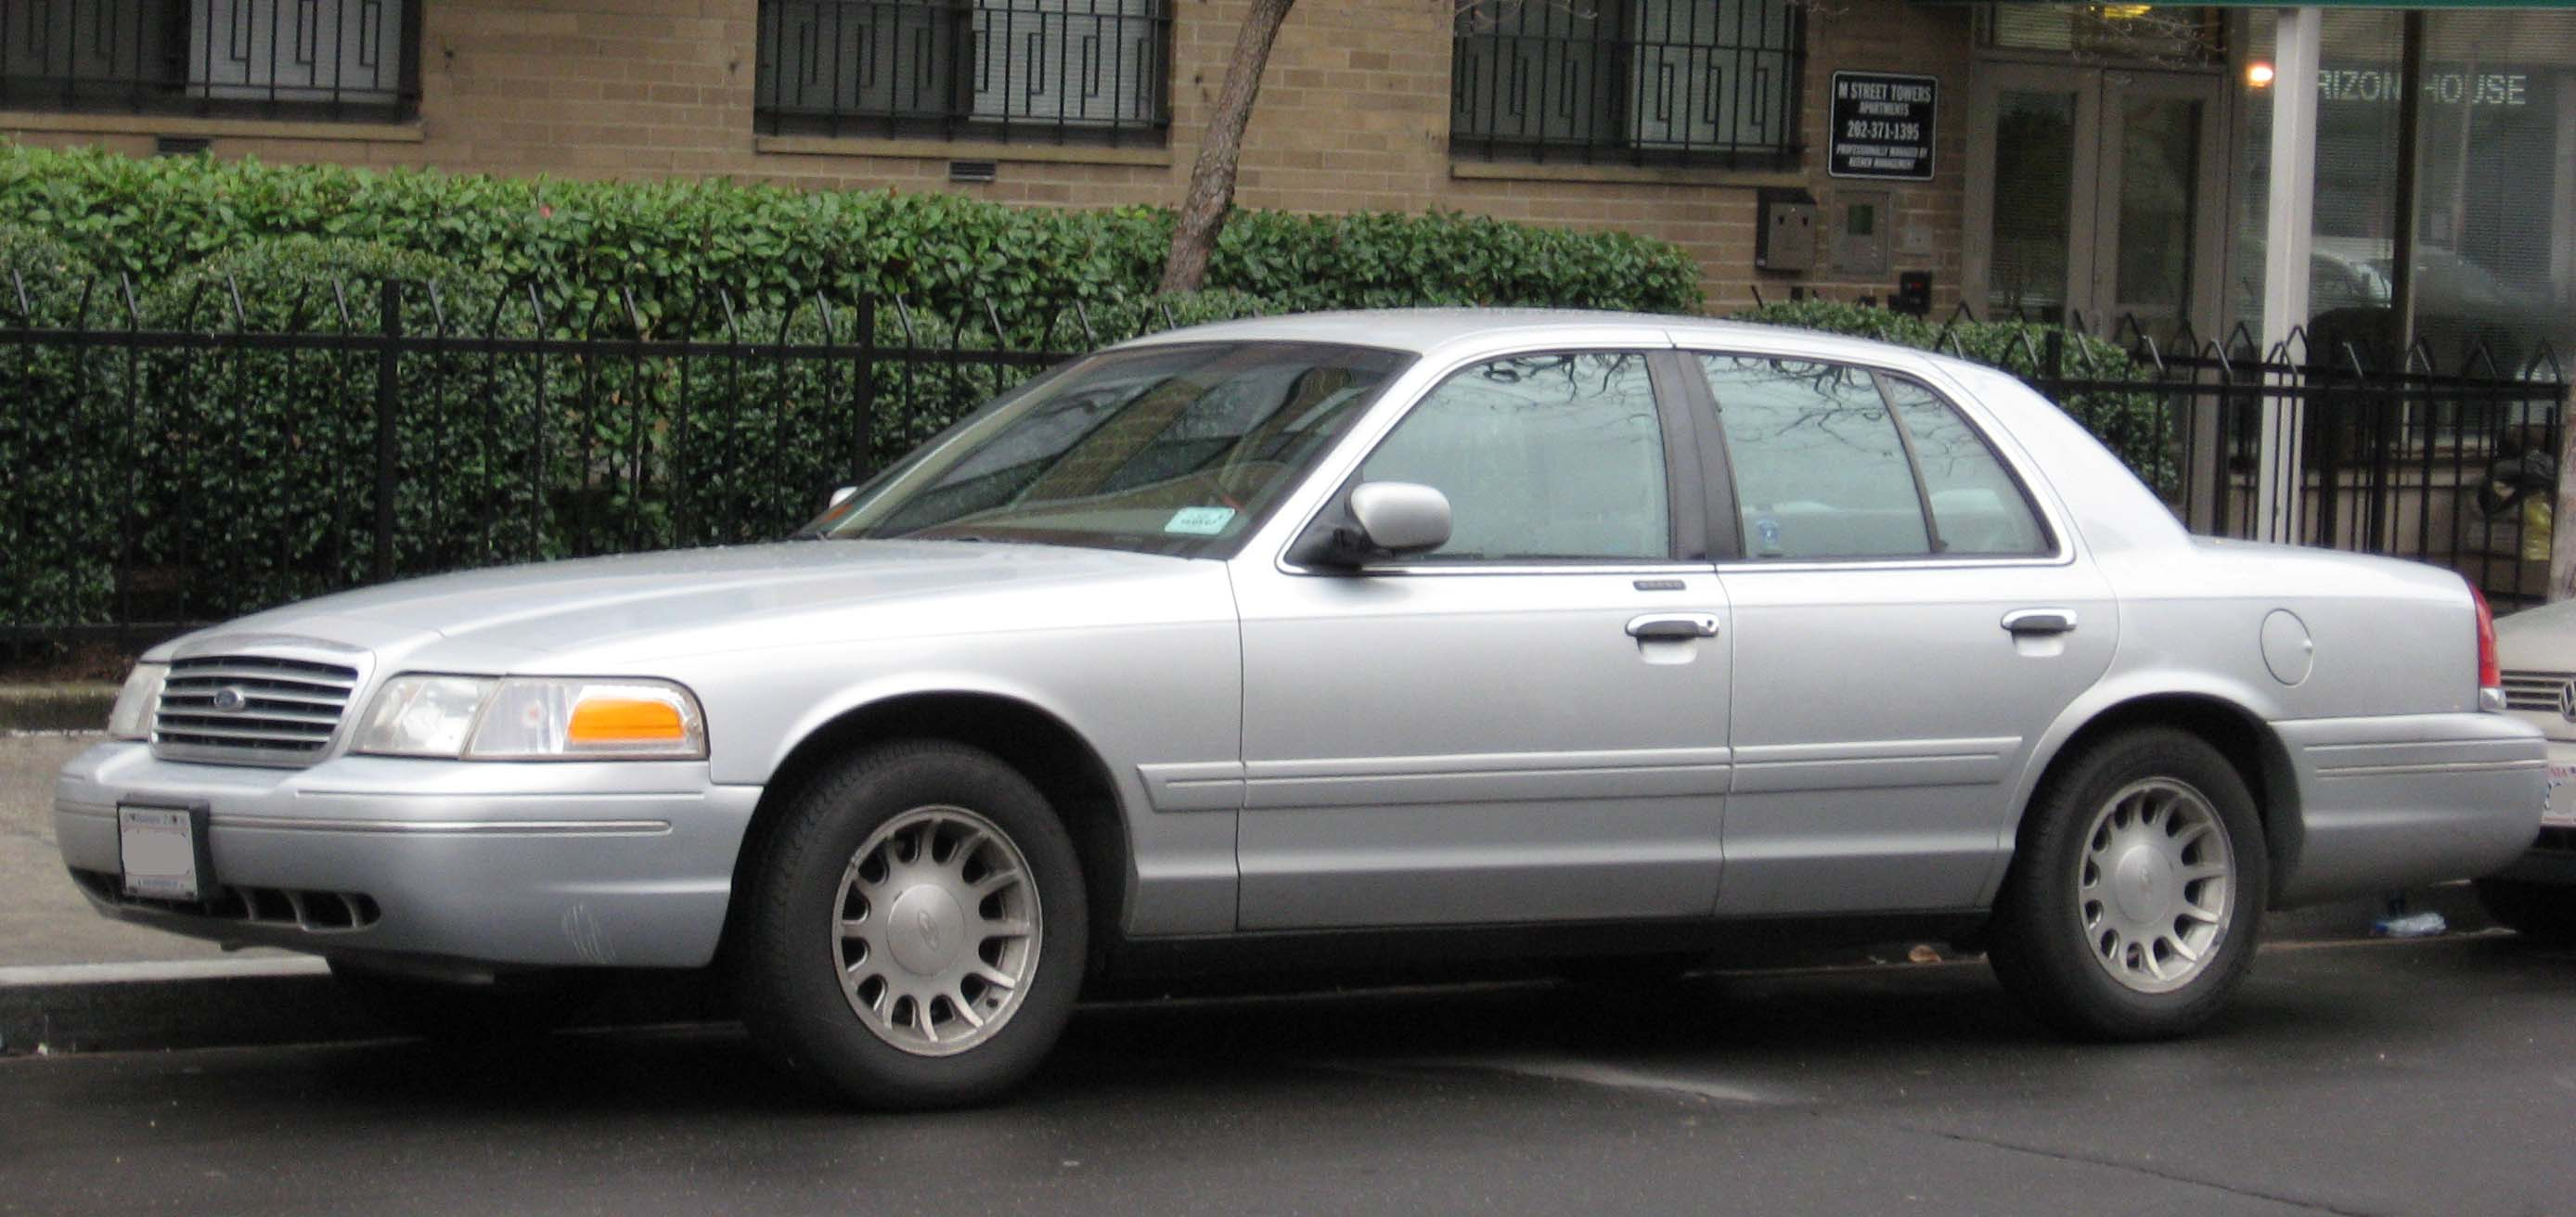 1998 Ford Crown Victoria #1